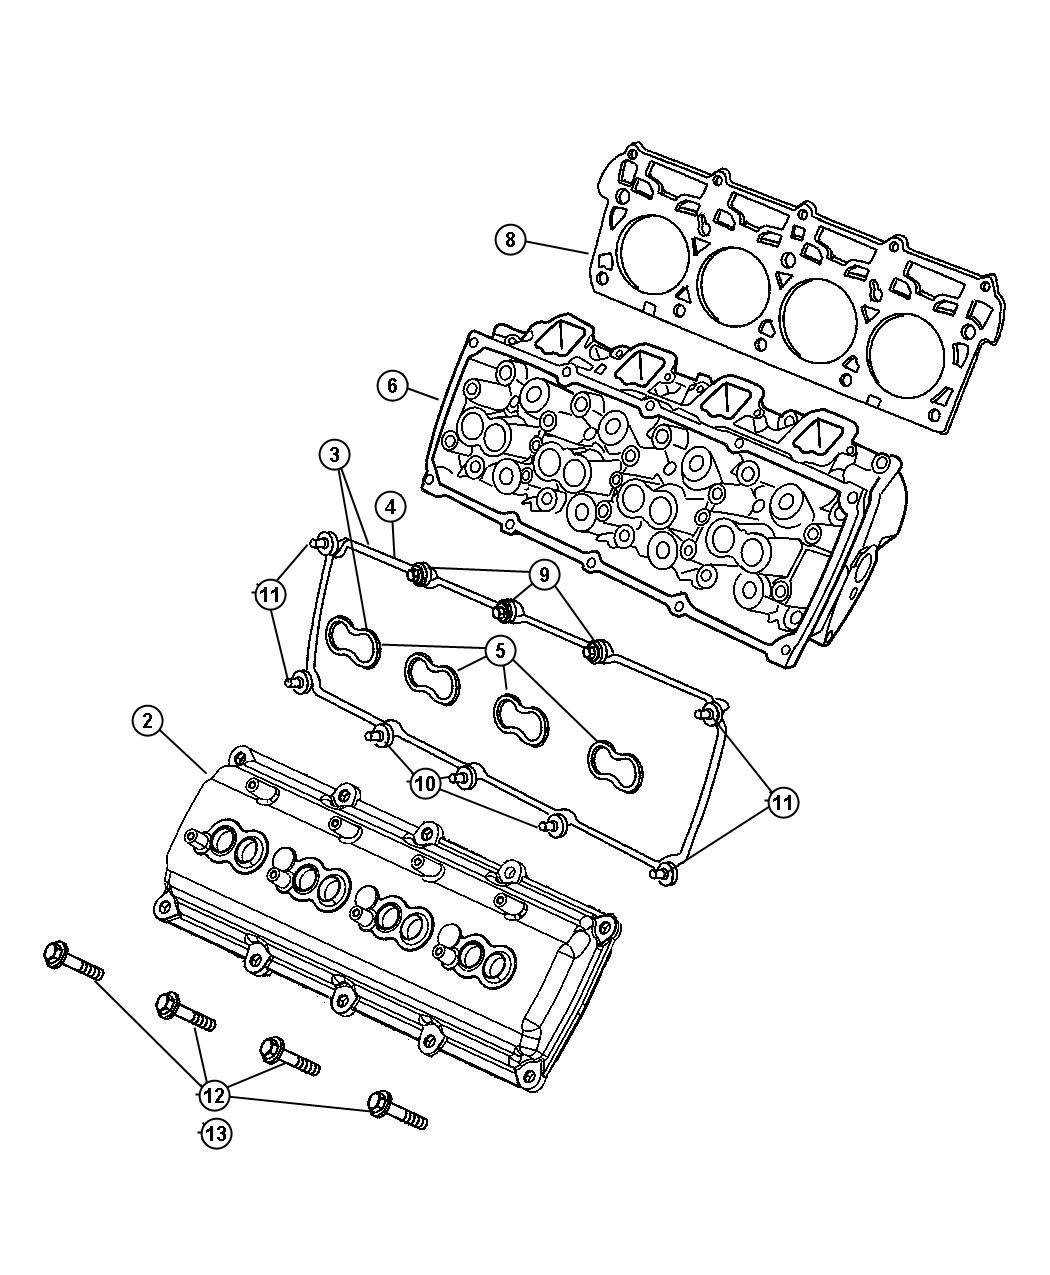 00i83052  L Hemi Engine Gasket Diagram on jeep grand cherokee, jeep cherokee, performance parts, engine pulley part number, engine pulley schematic, v8 horsepower, intake manifold upgrade,